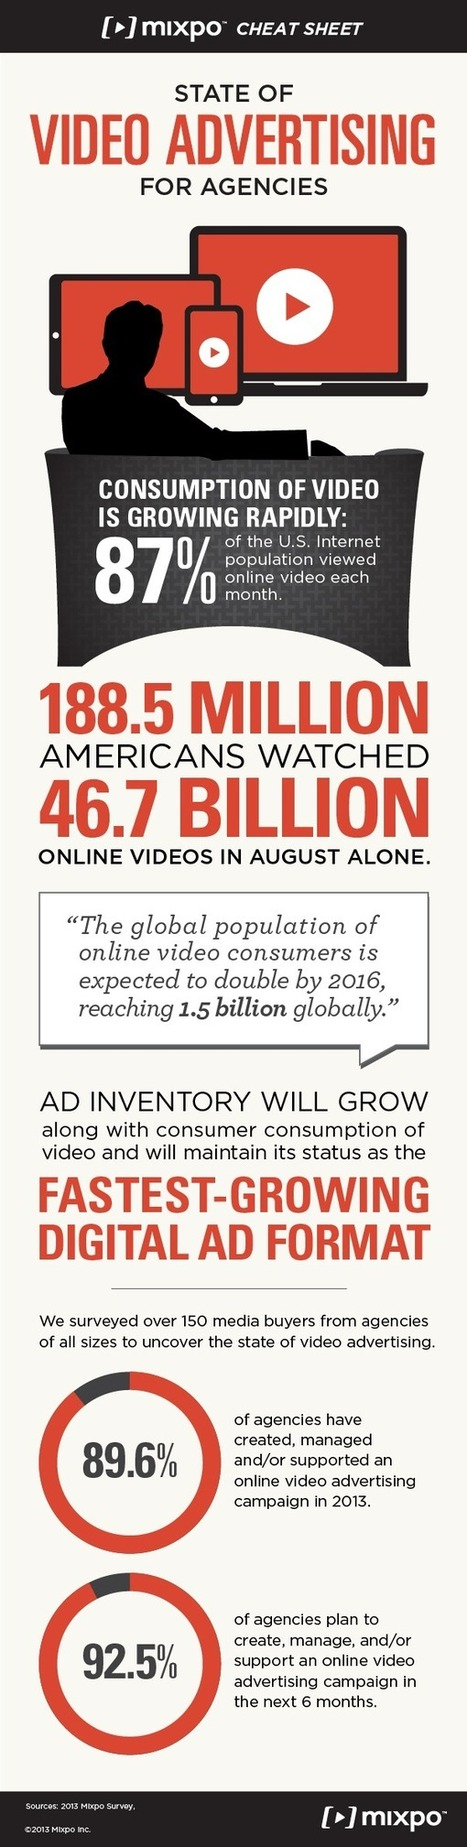 State of Video Advertising for Agencies [Infographic] | SpisanieTO | Scoop.it